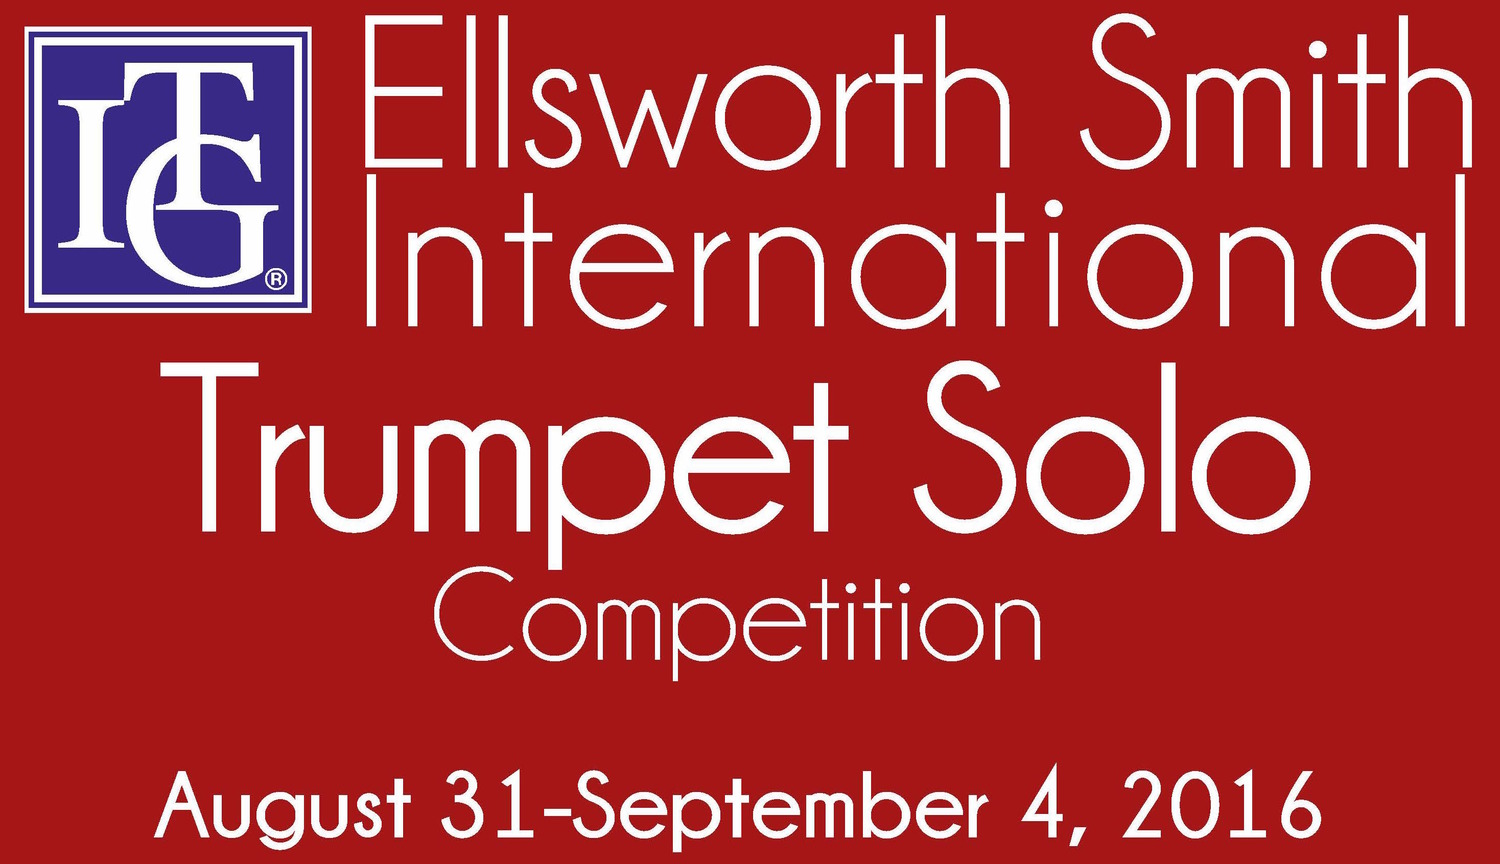 2016 Ellsworth Smith International Trumpet Solo Competition